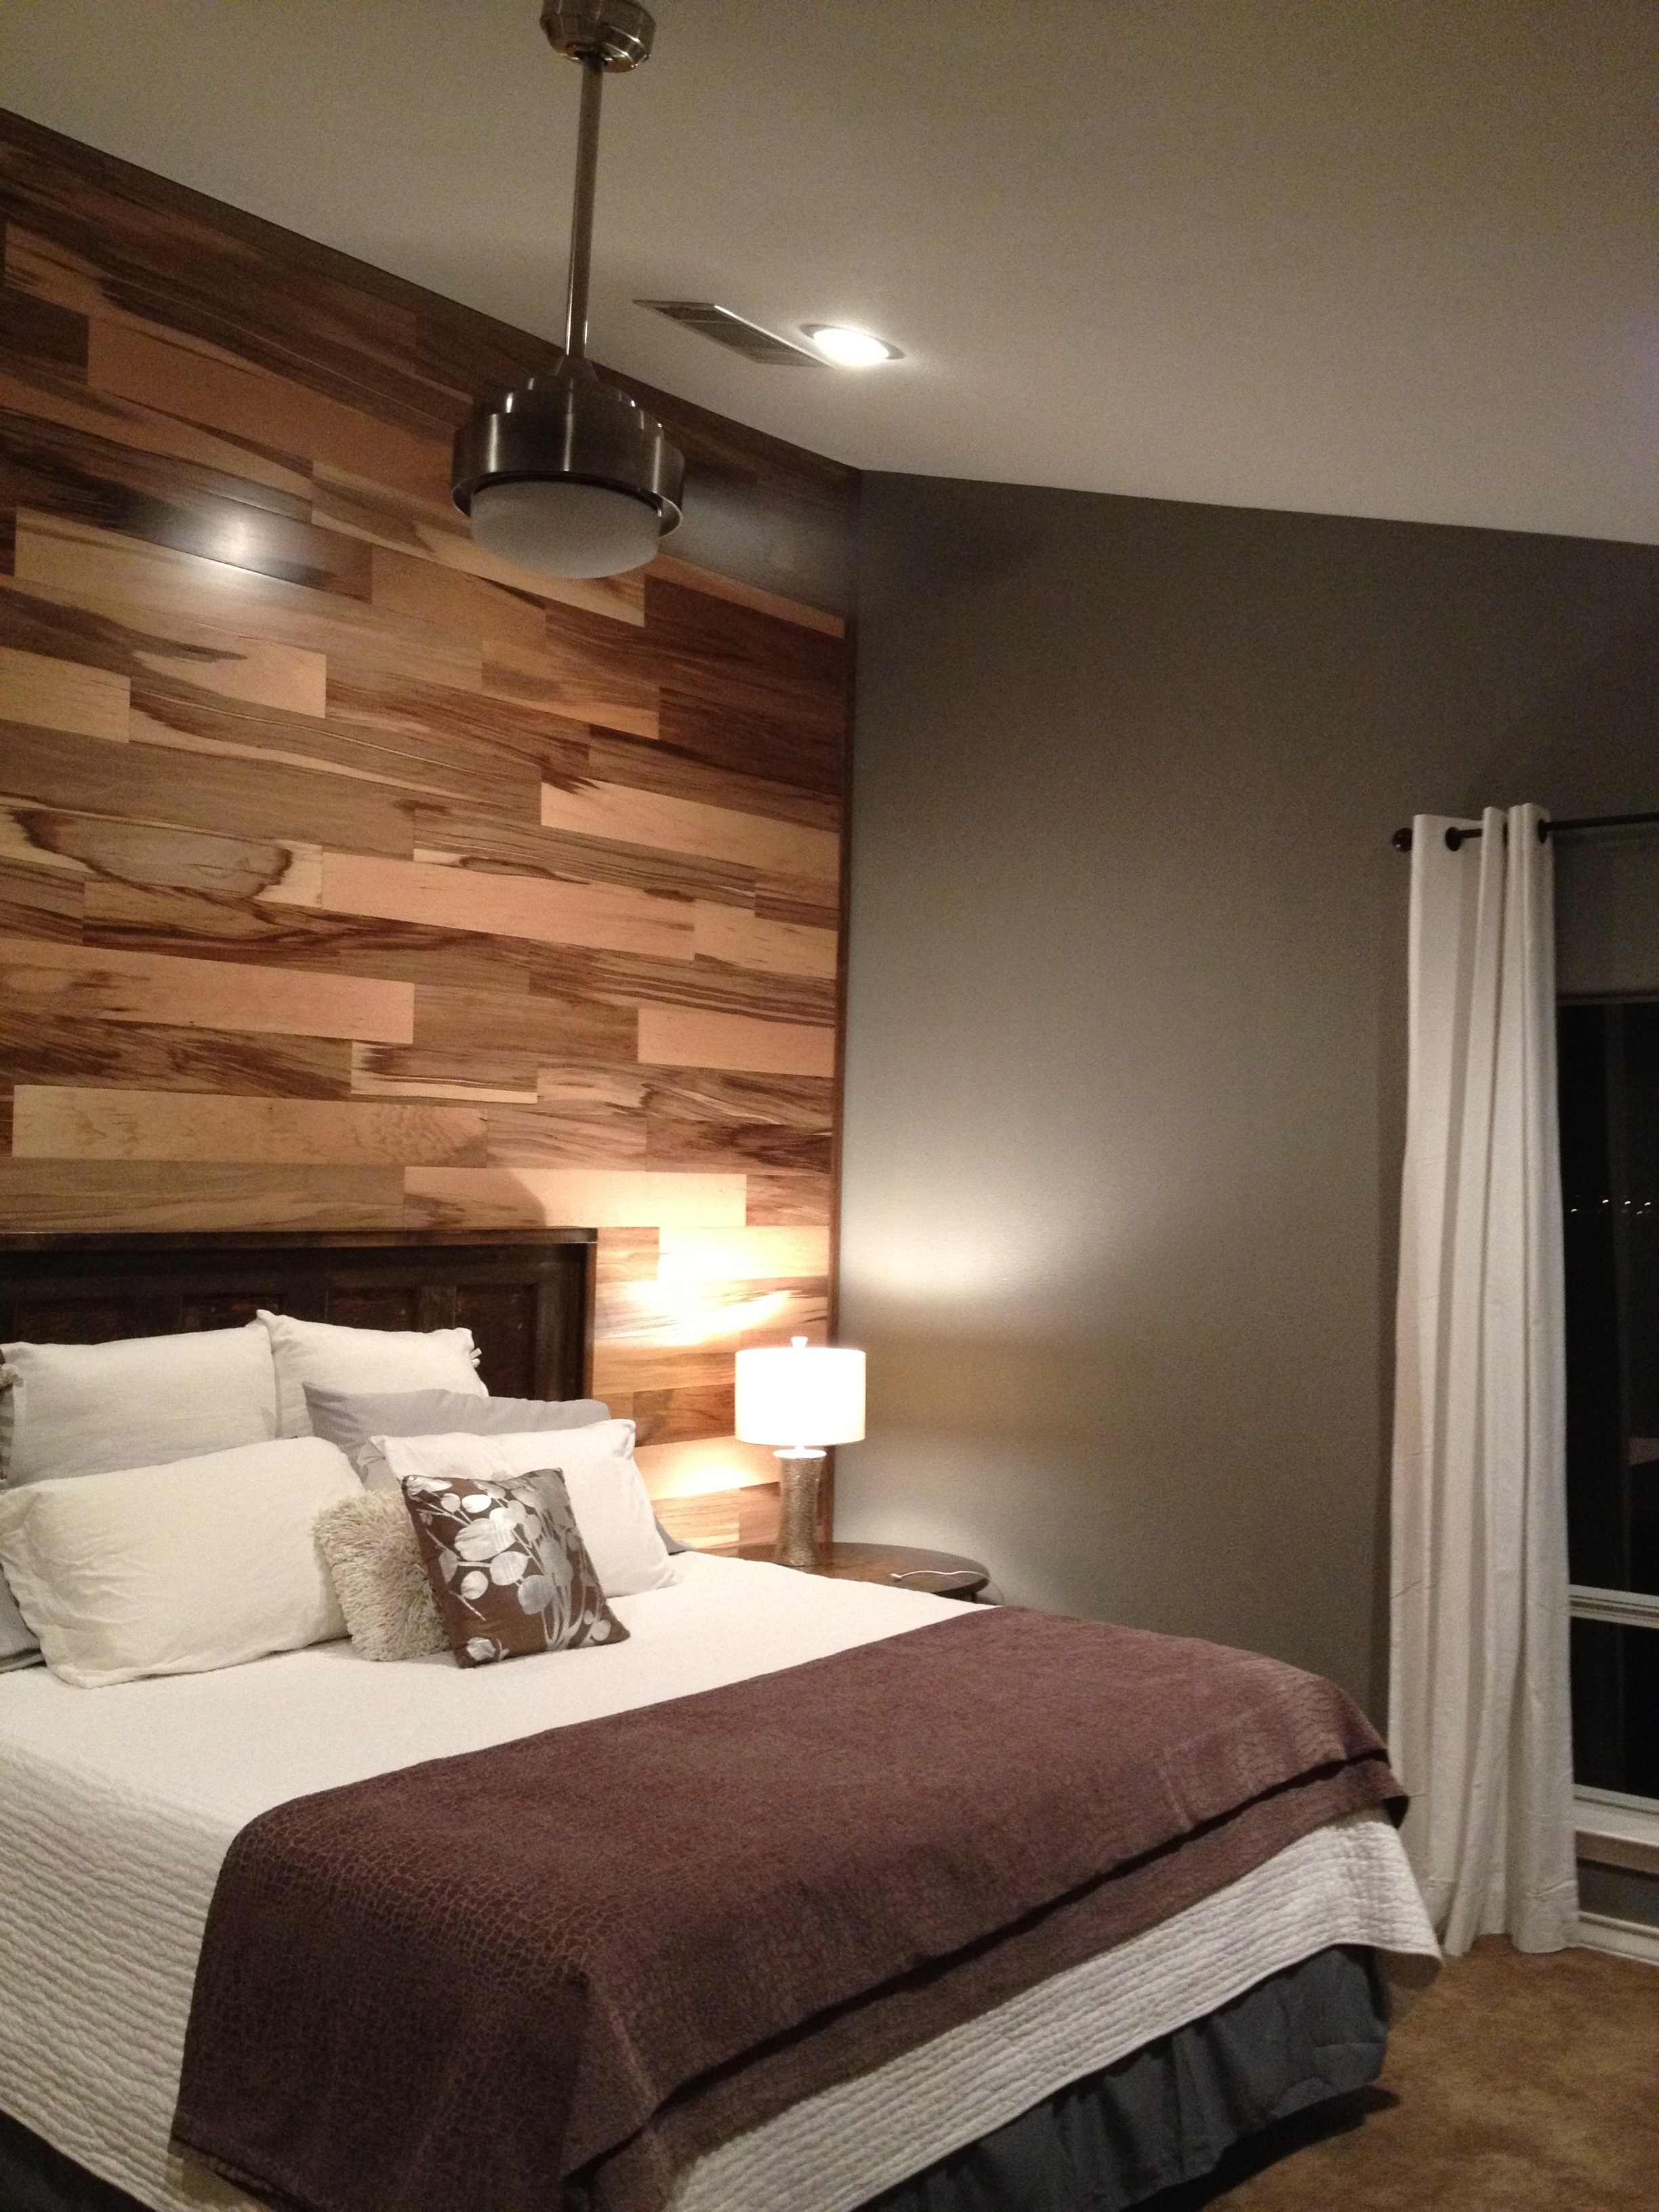 Love The Floor On The Wall! | Decorating | Pinterest | Walls With Most Popular Wall Accents With Laminate Flooring (View 12 of 15)